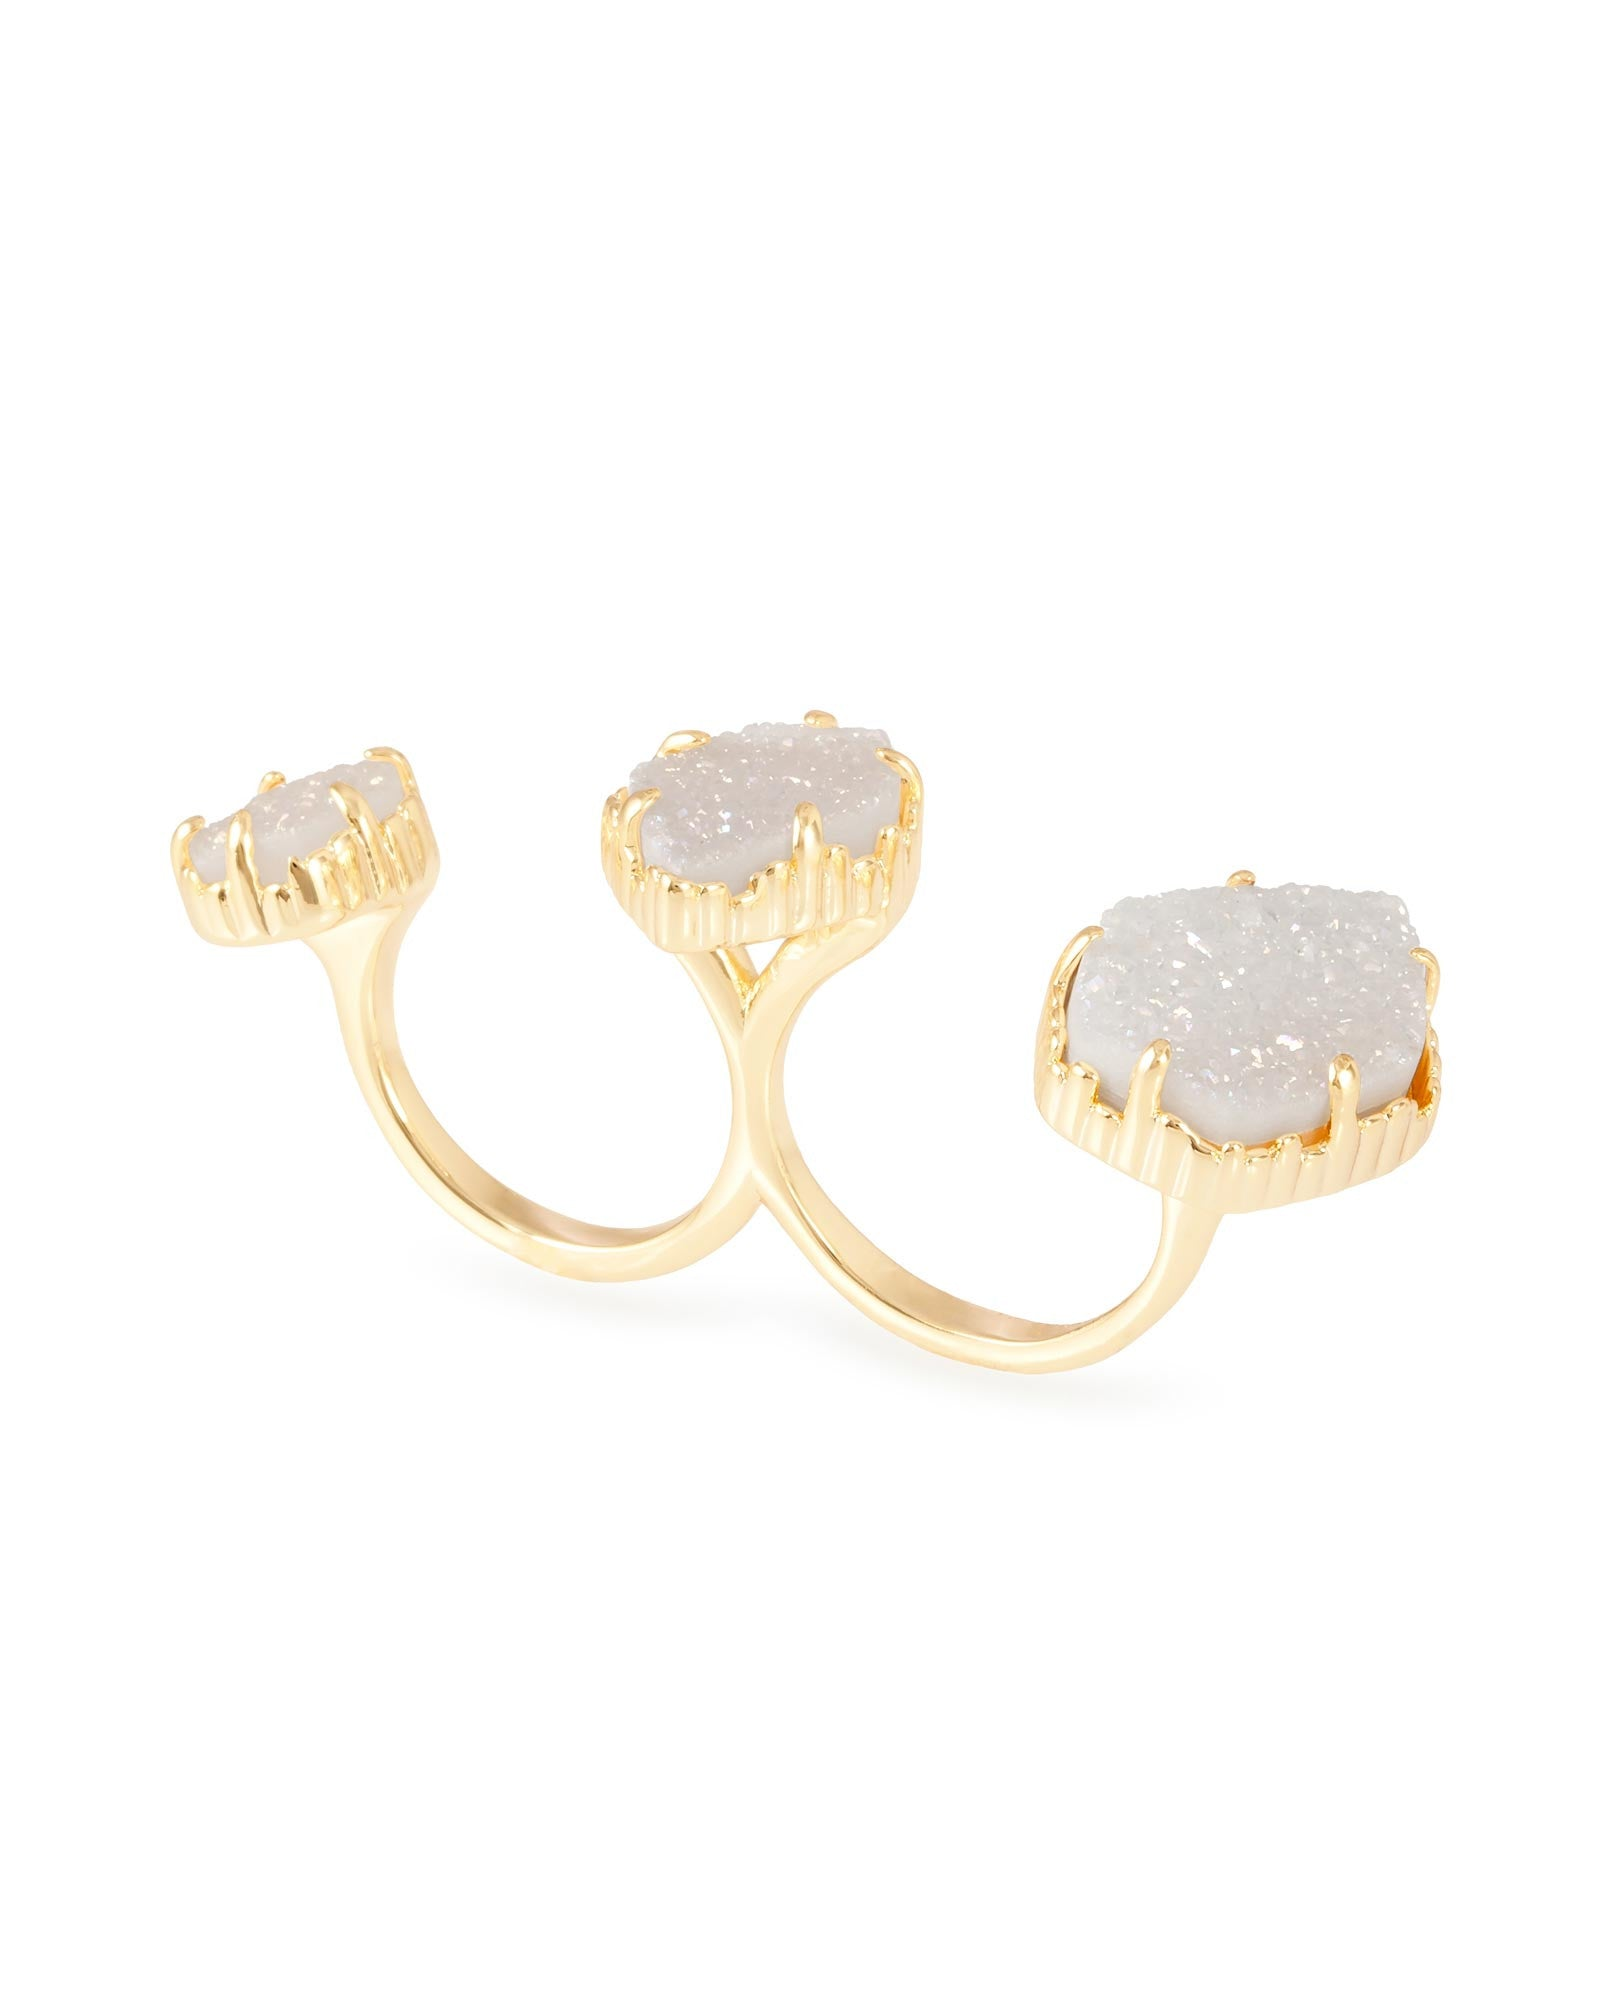 Gold Plated Plated with White Druzy Stone Knuckle Ring